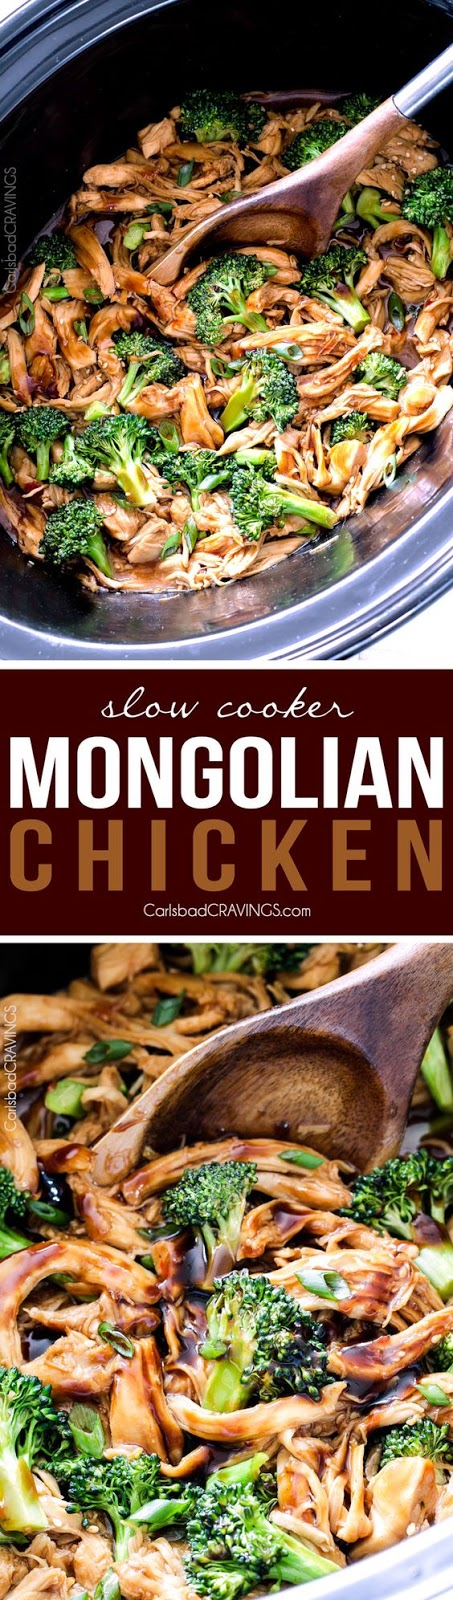 Mongolian Chicken (Slow Cooker)